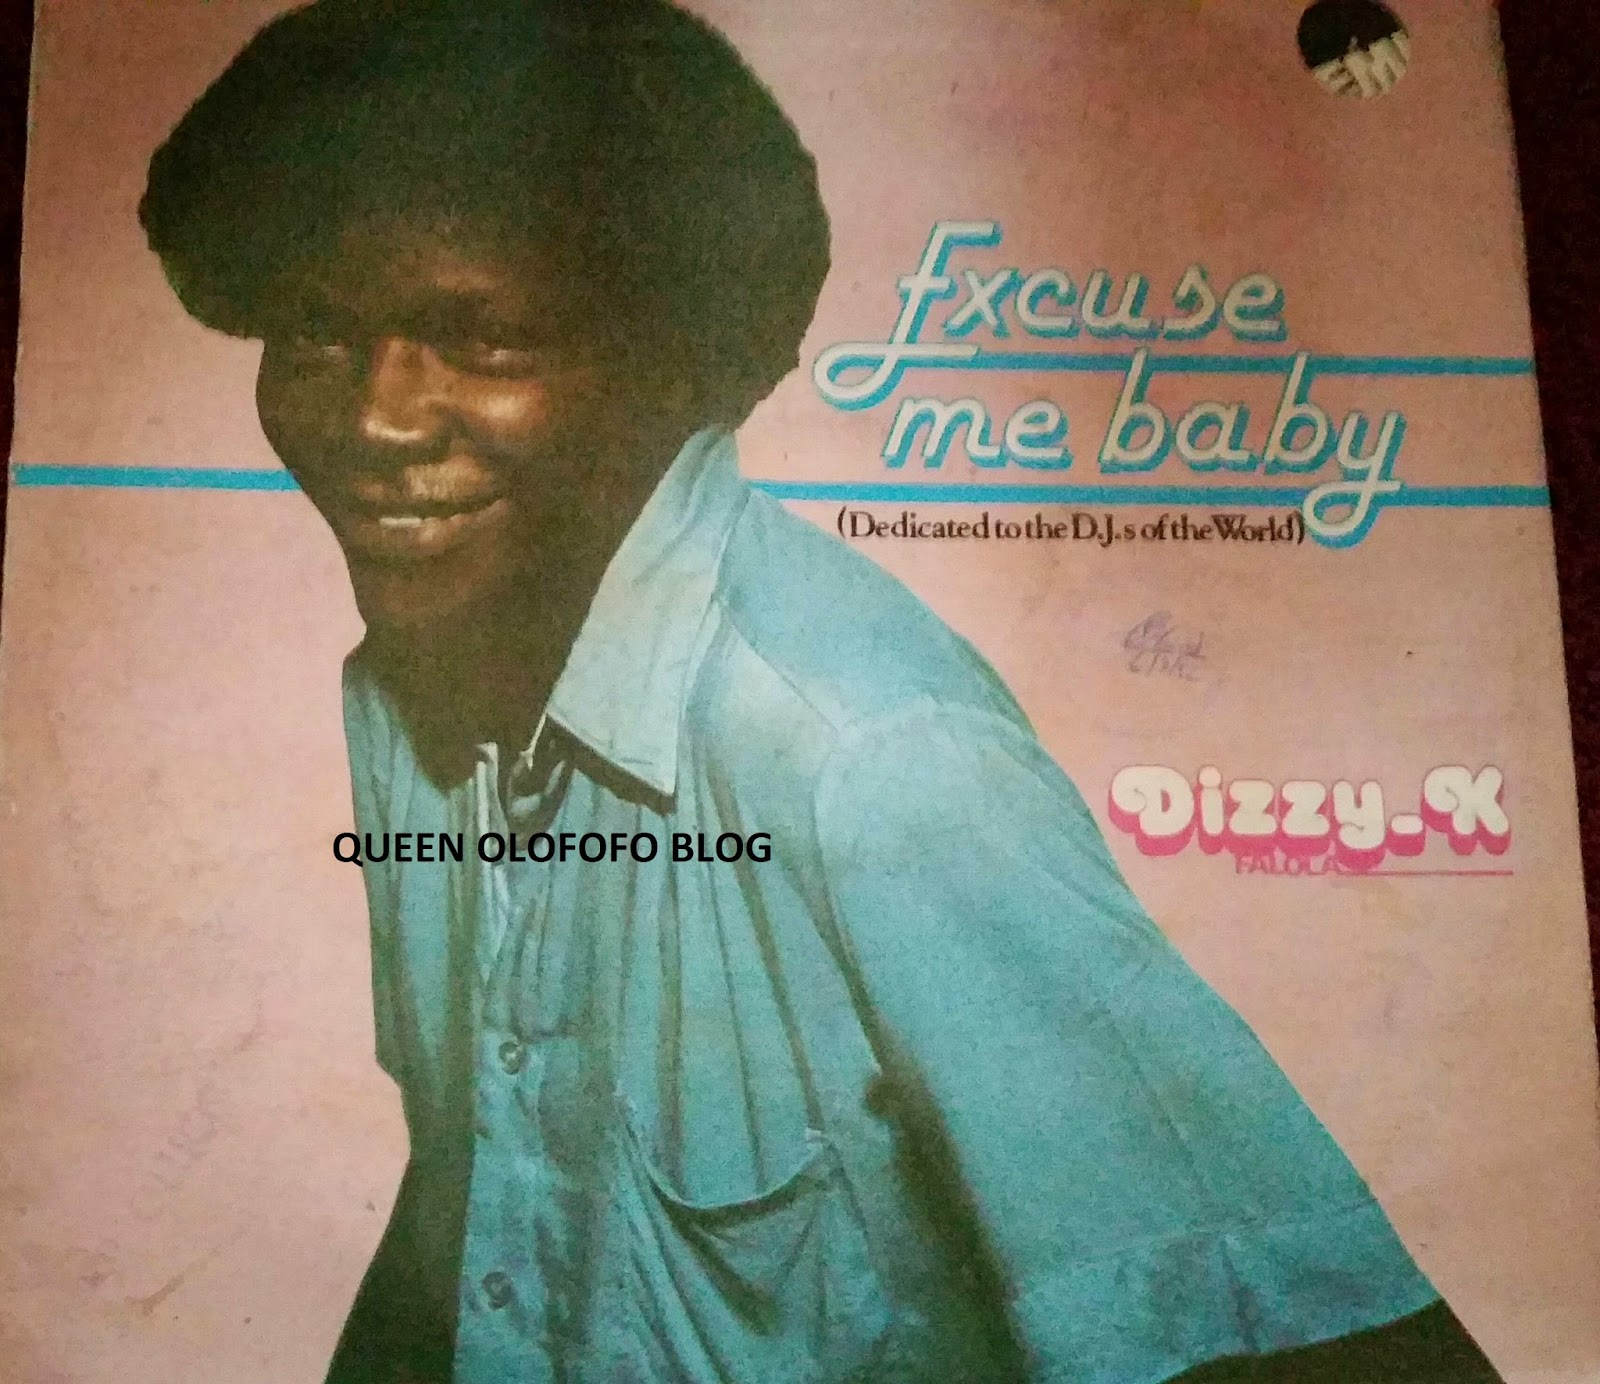 dizzy k falola was excusing all the ladies with excuse me baby